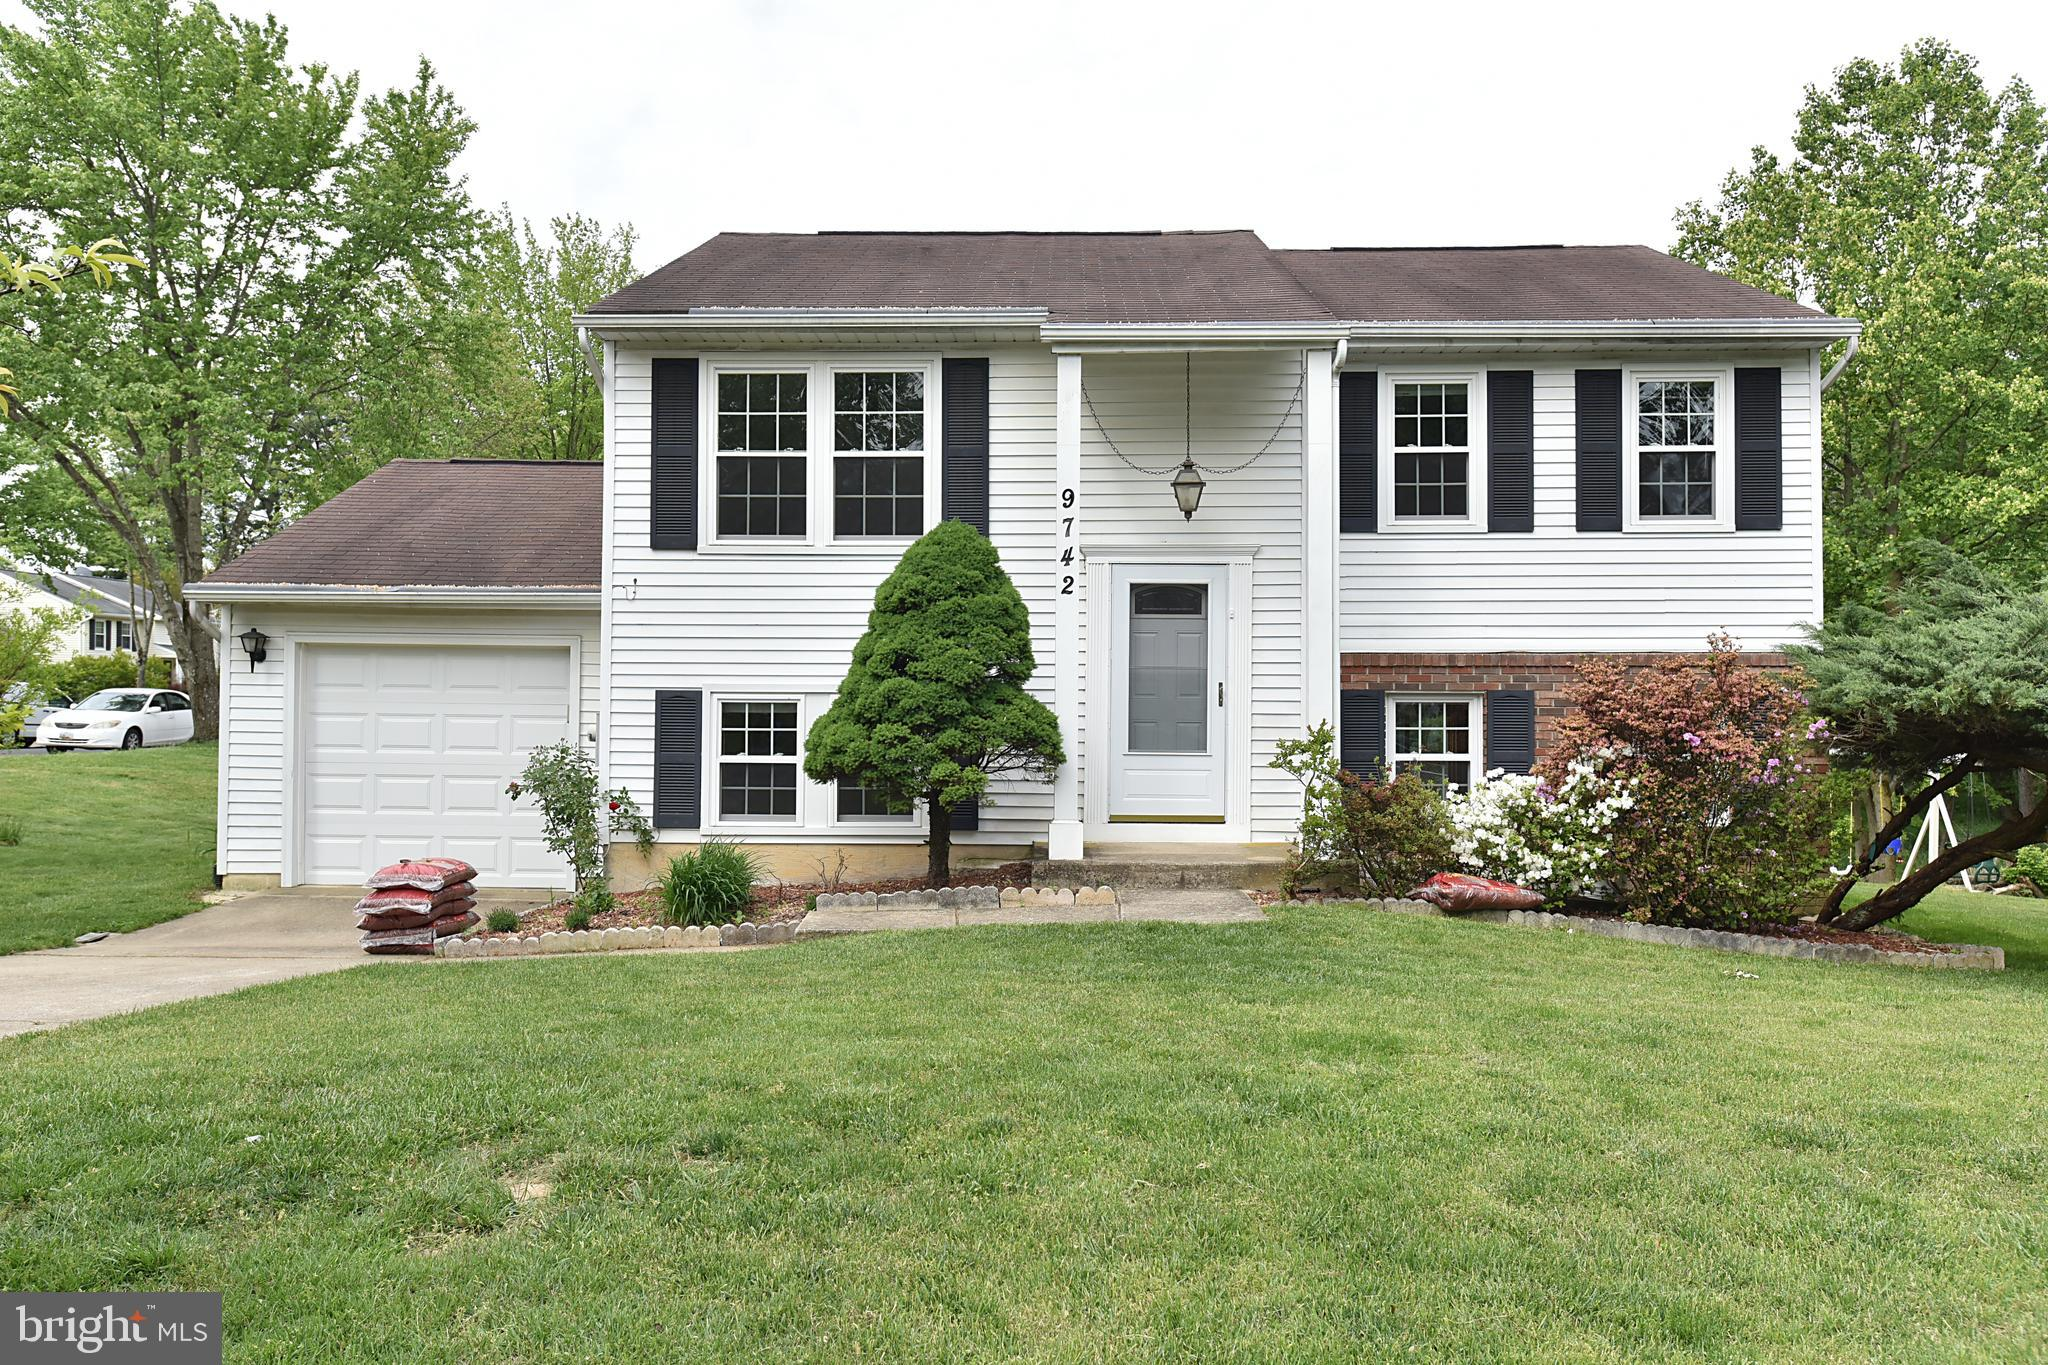 Well-maintained Beautiful home located at a Cul-De-Sac.  4 bedrooms and 2.5 baths in Hammonds Promis